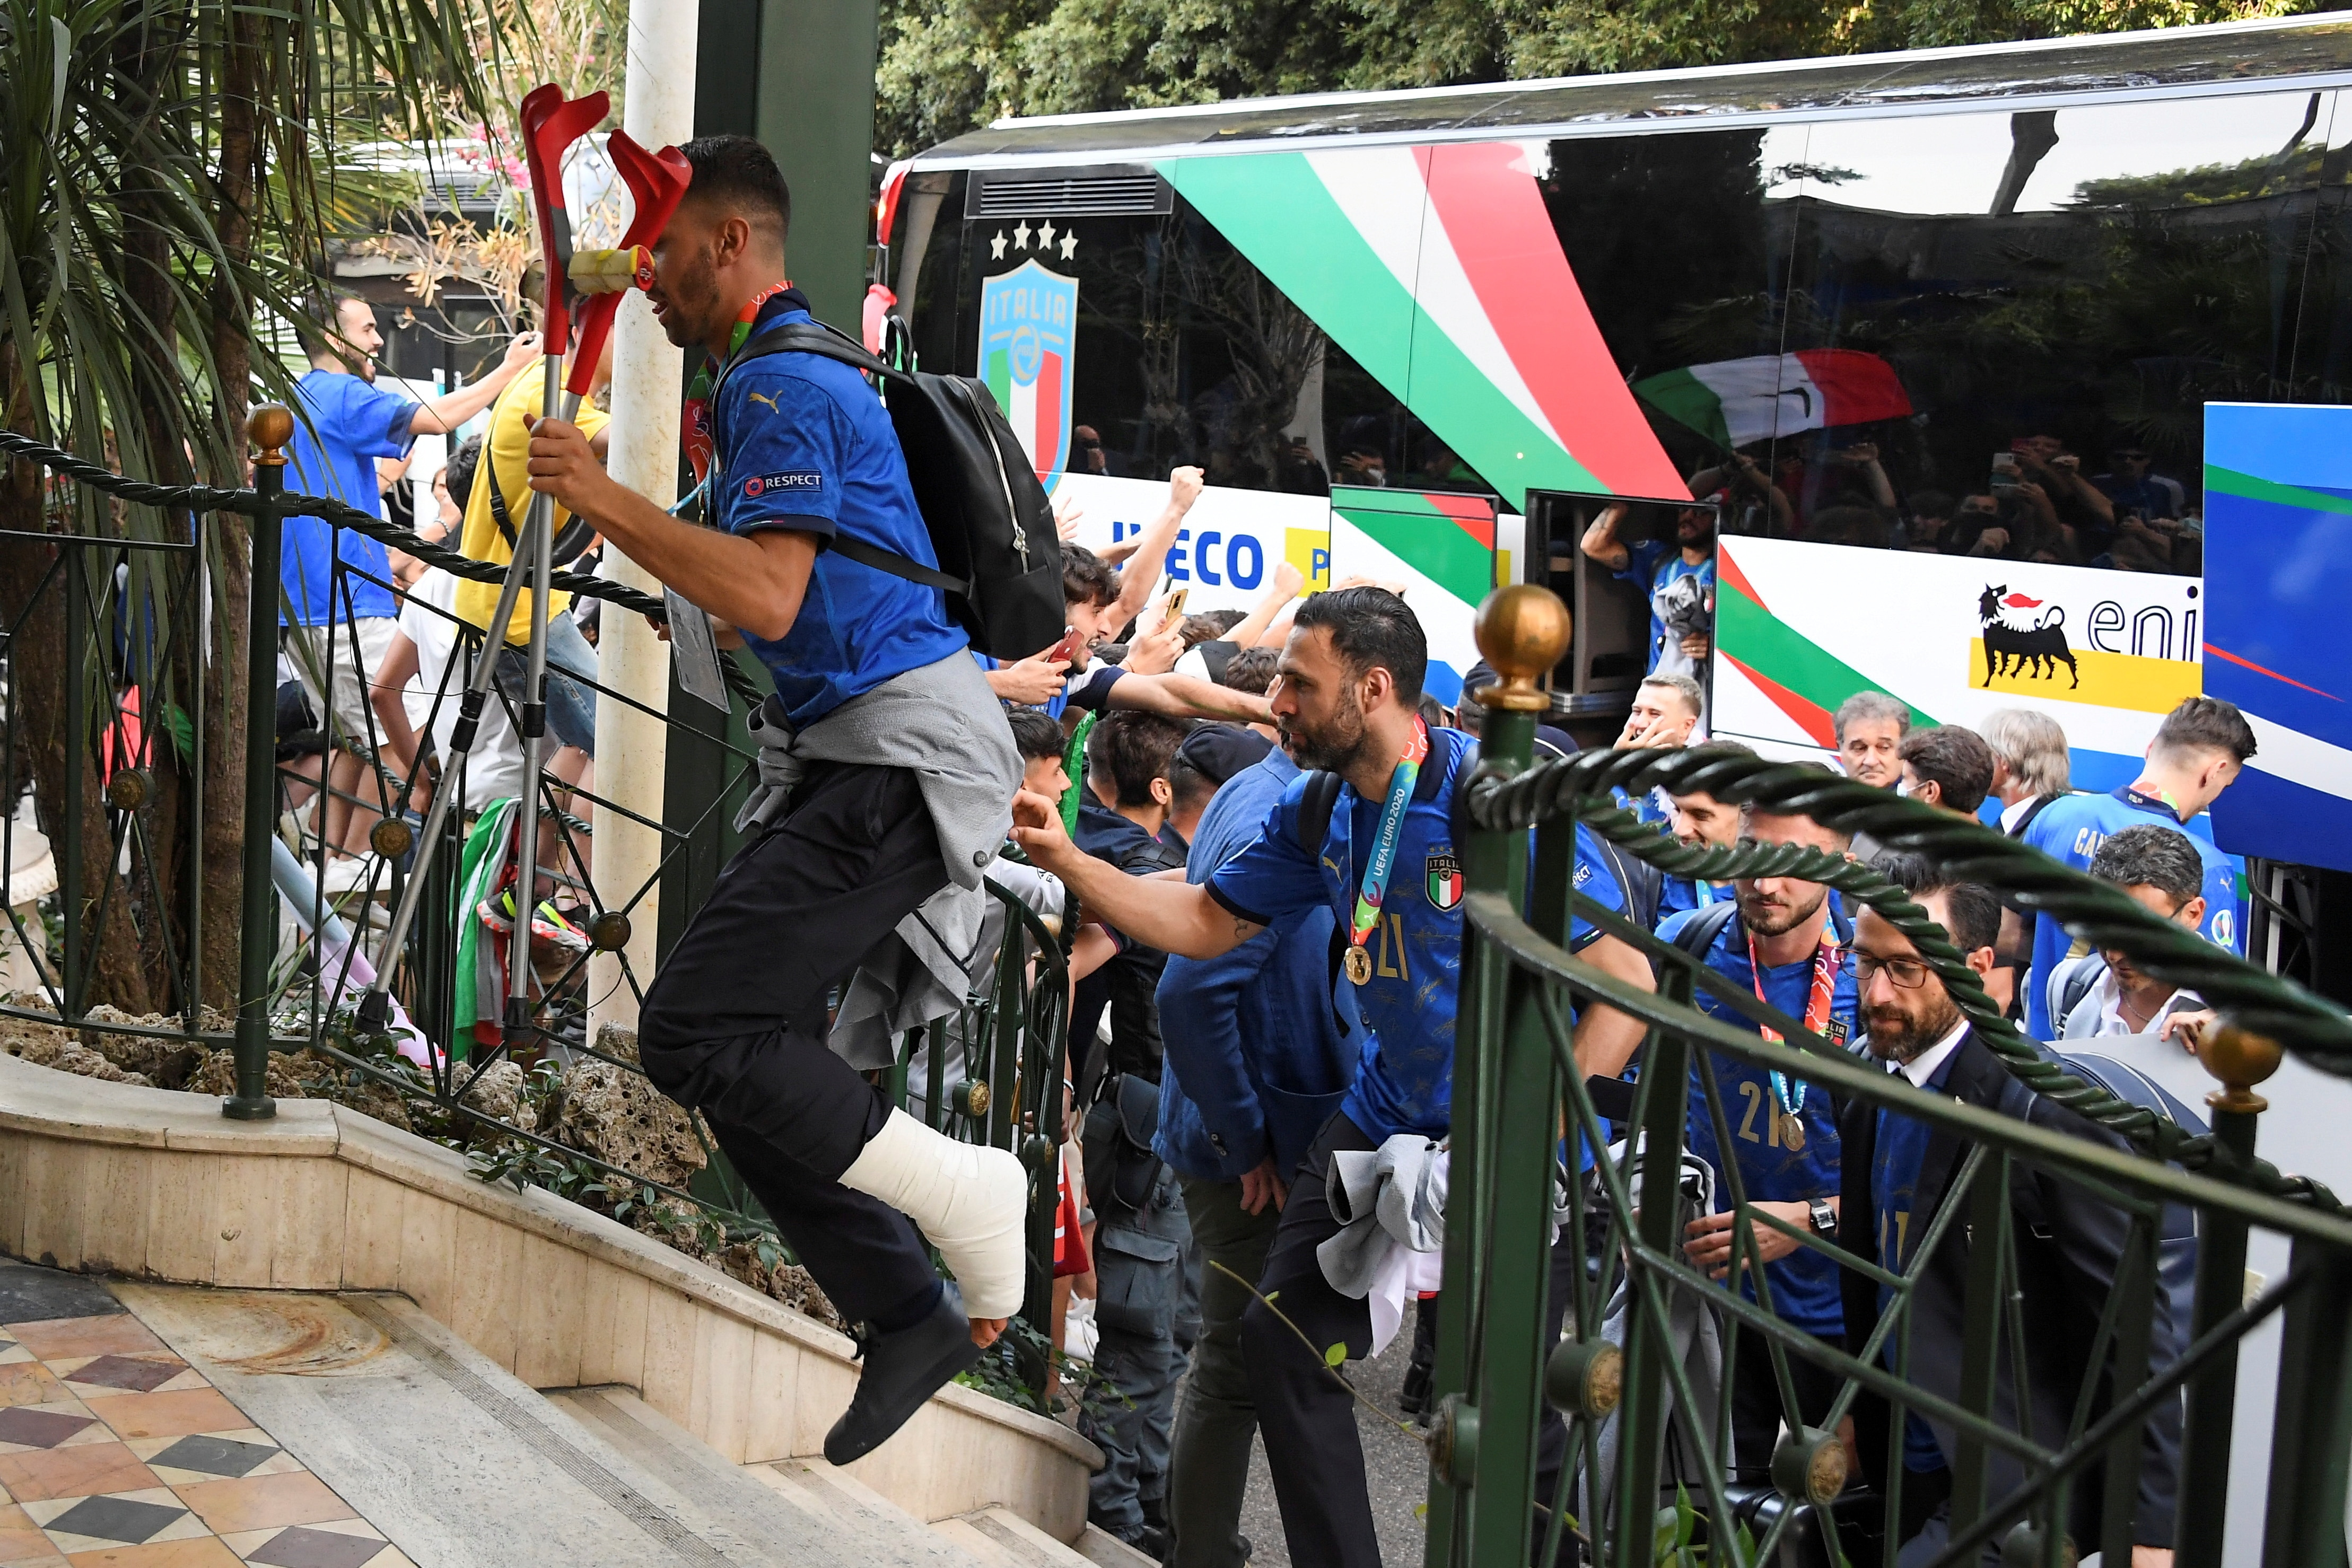 Euro 2020 - Italy's defender Leonardo Spinazzola and other members of the soccer national team arrive at the Parco dei Principi hotel after winning the European Championship. -(REUTERS)